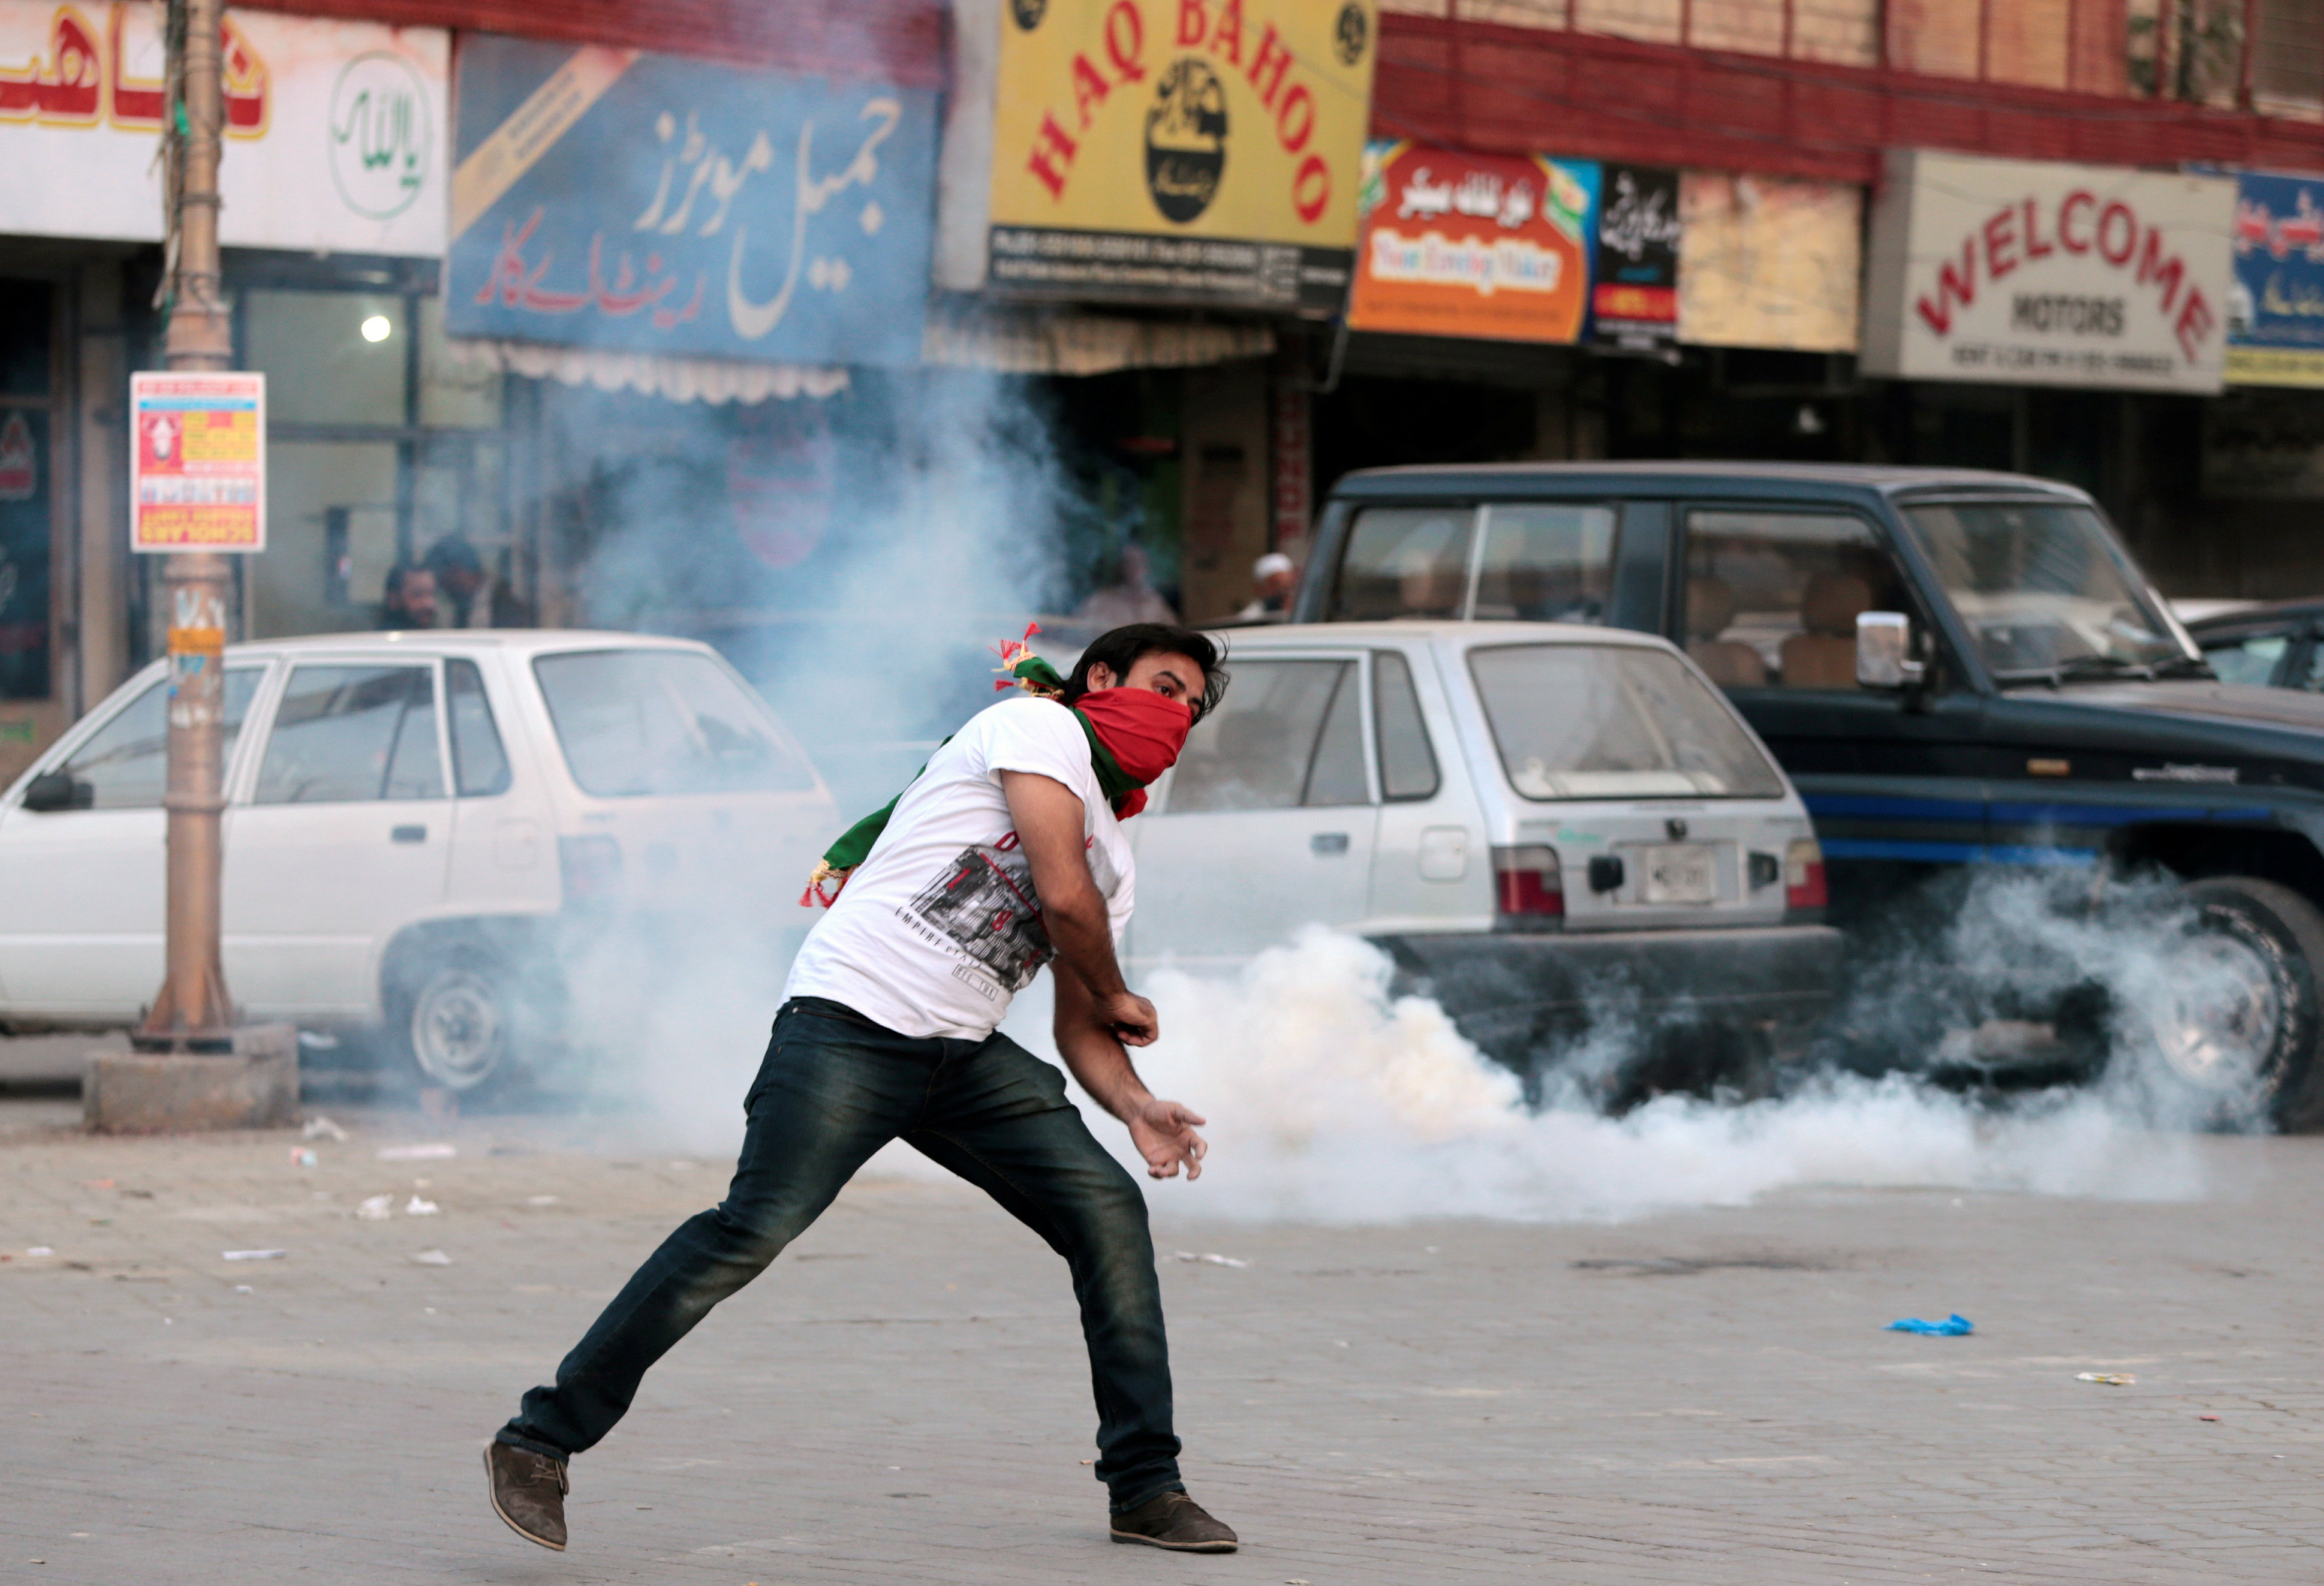 A protester throws stones at police during clashes in Rawalpindi, Pakistan October 28, 2016.